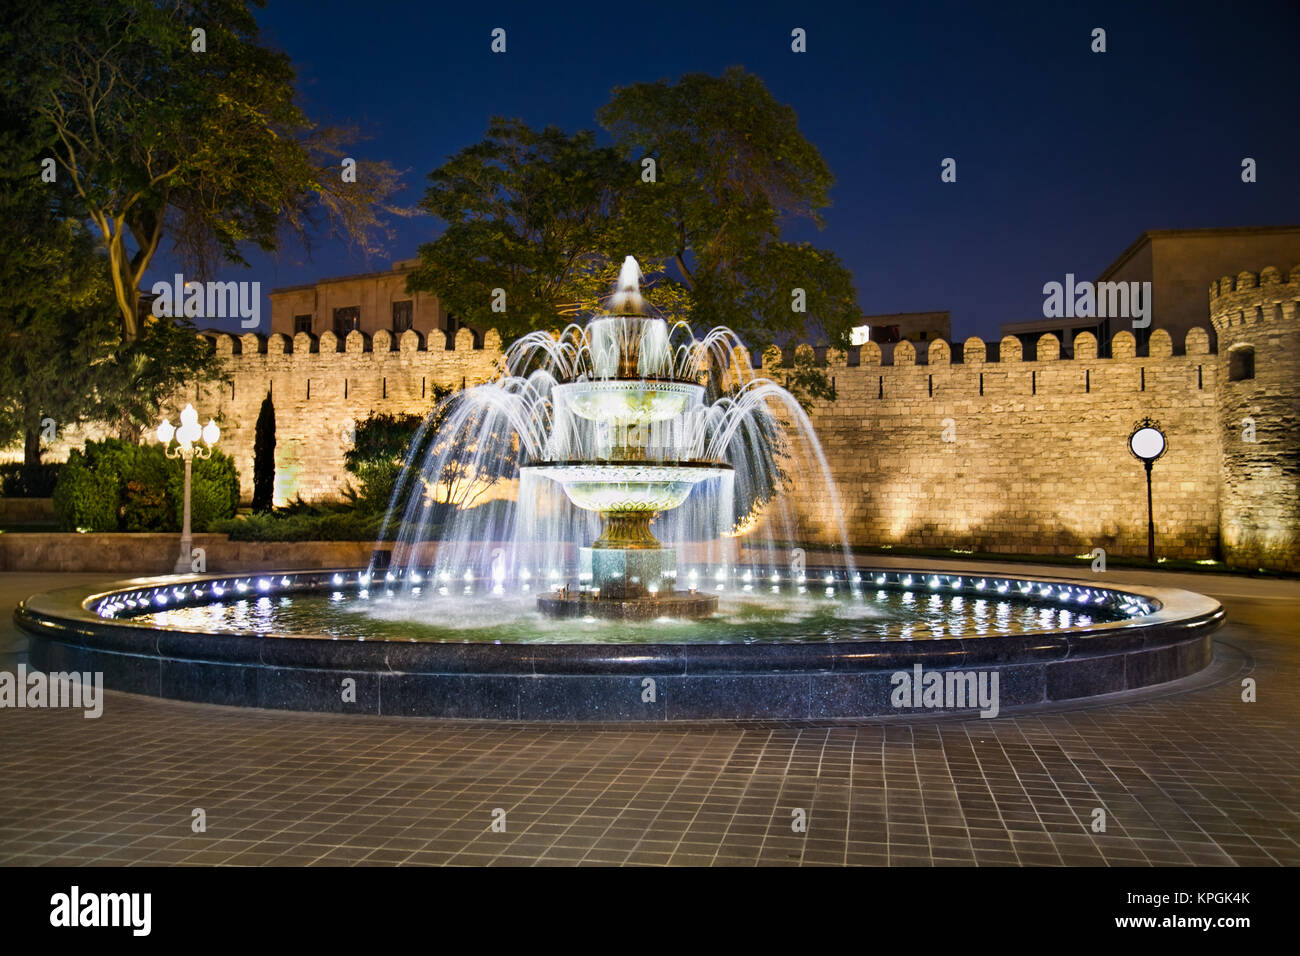 Fountain in front of ancient fortress wall in Baku old town, Azerbaijan. - Stock Image